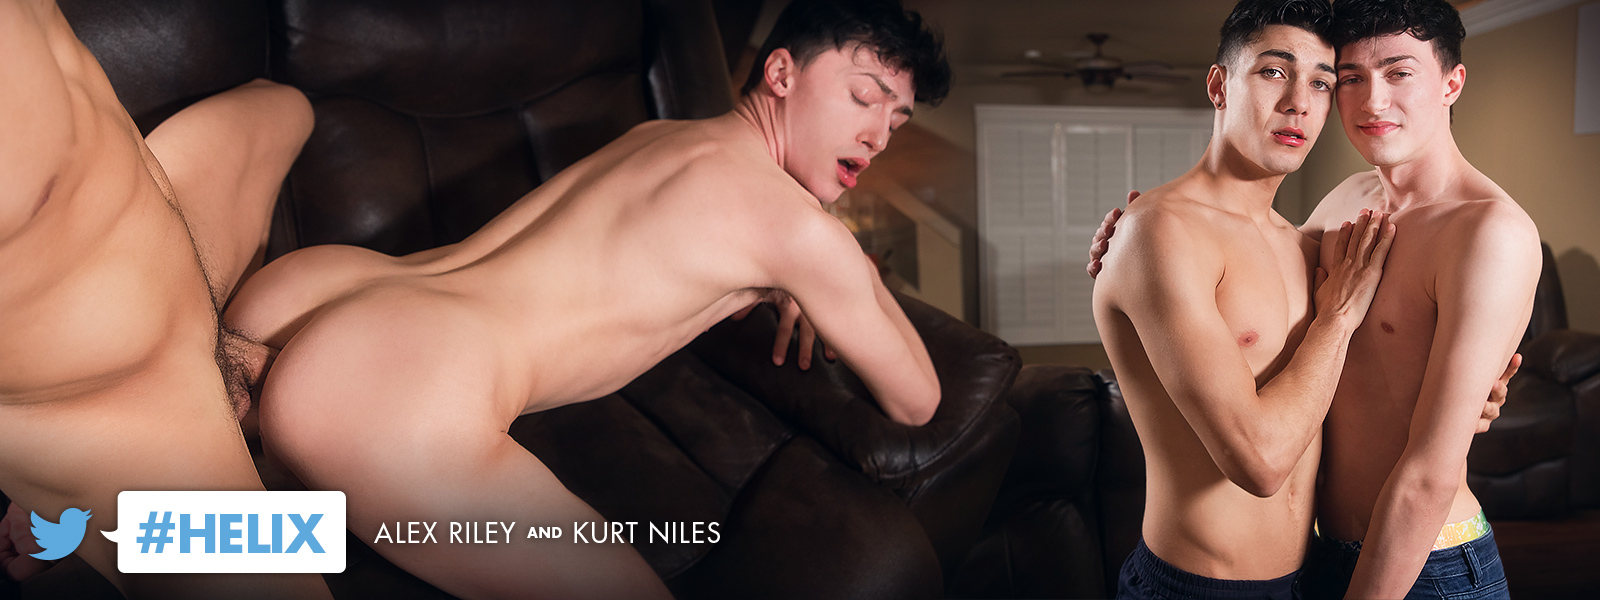 Young Twinks Twink Rimming Kurt Niles Kissing Jock Gay Brunette Boys Blowjob Big Dick Bareback Anal Sex Alex Riley  Helix Studios: #Helix (Kurt Niles, Alex Riley)